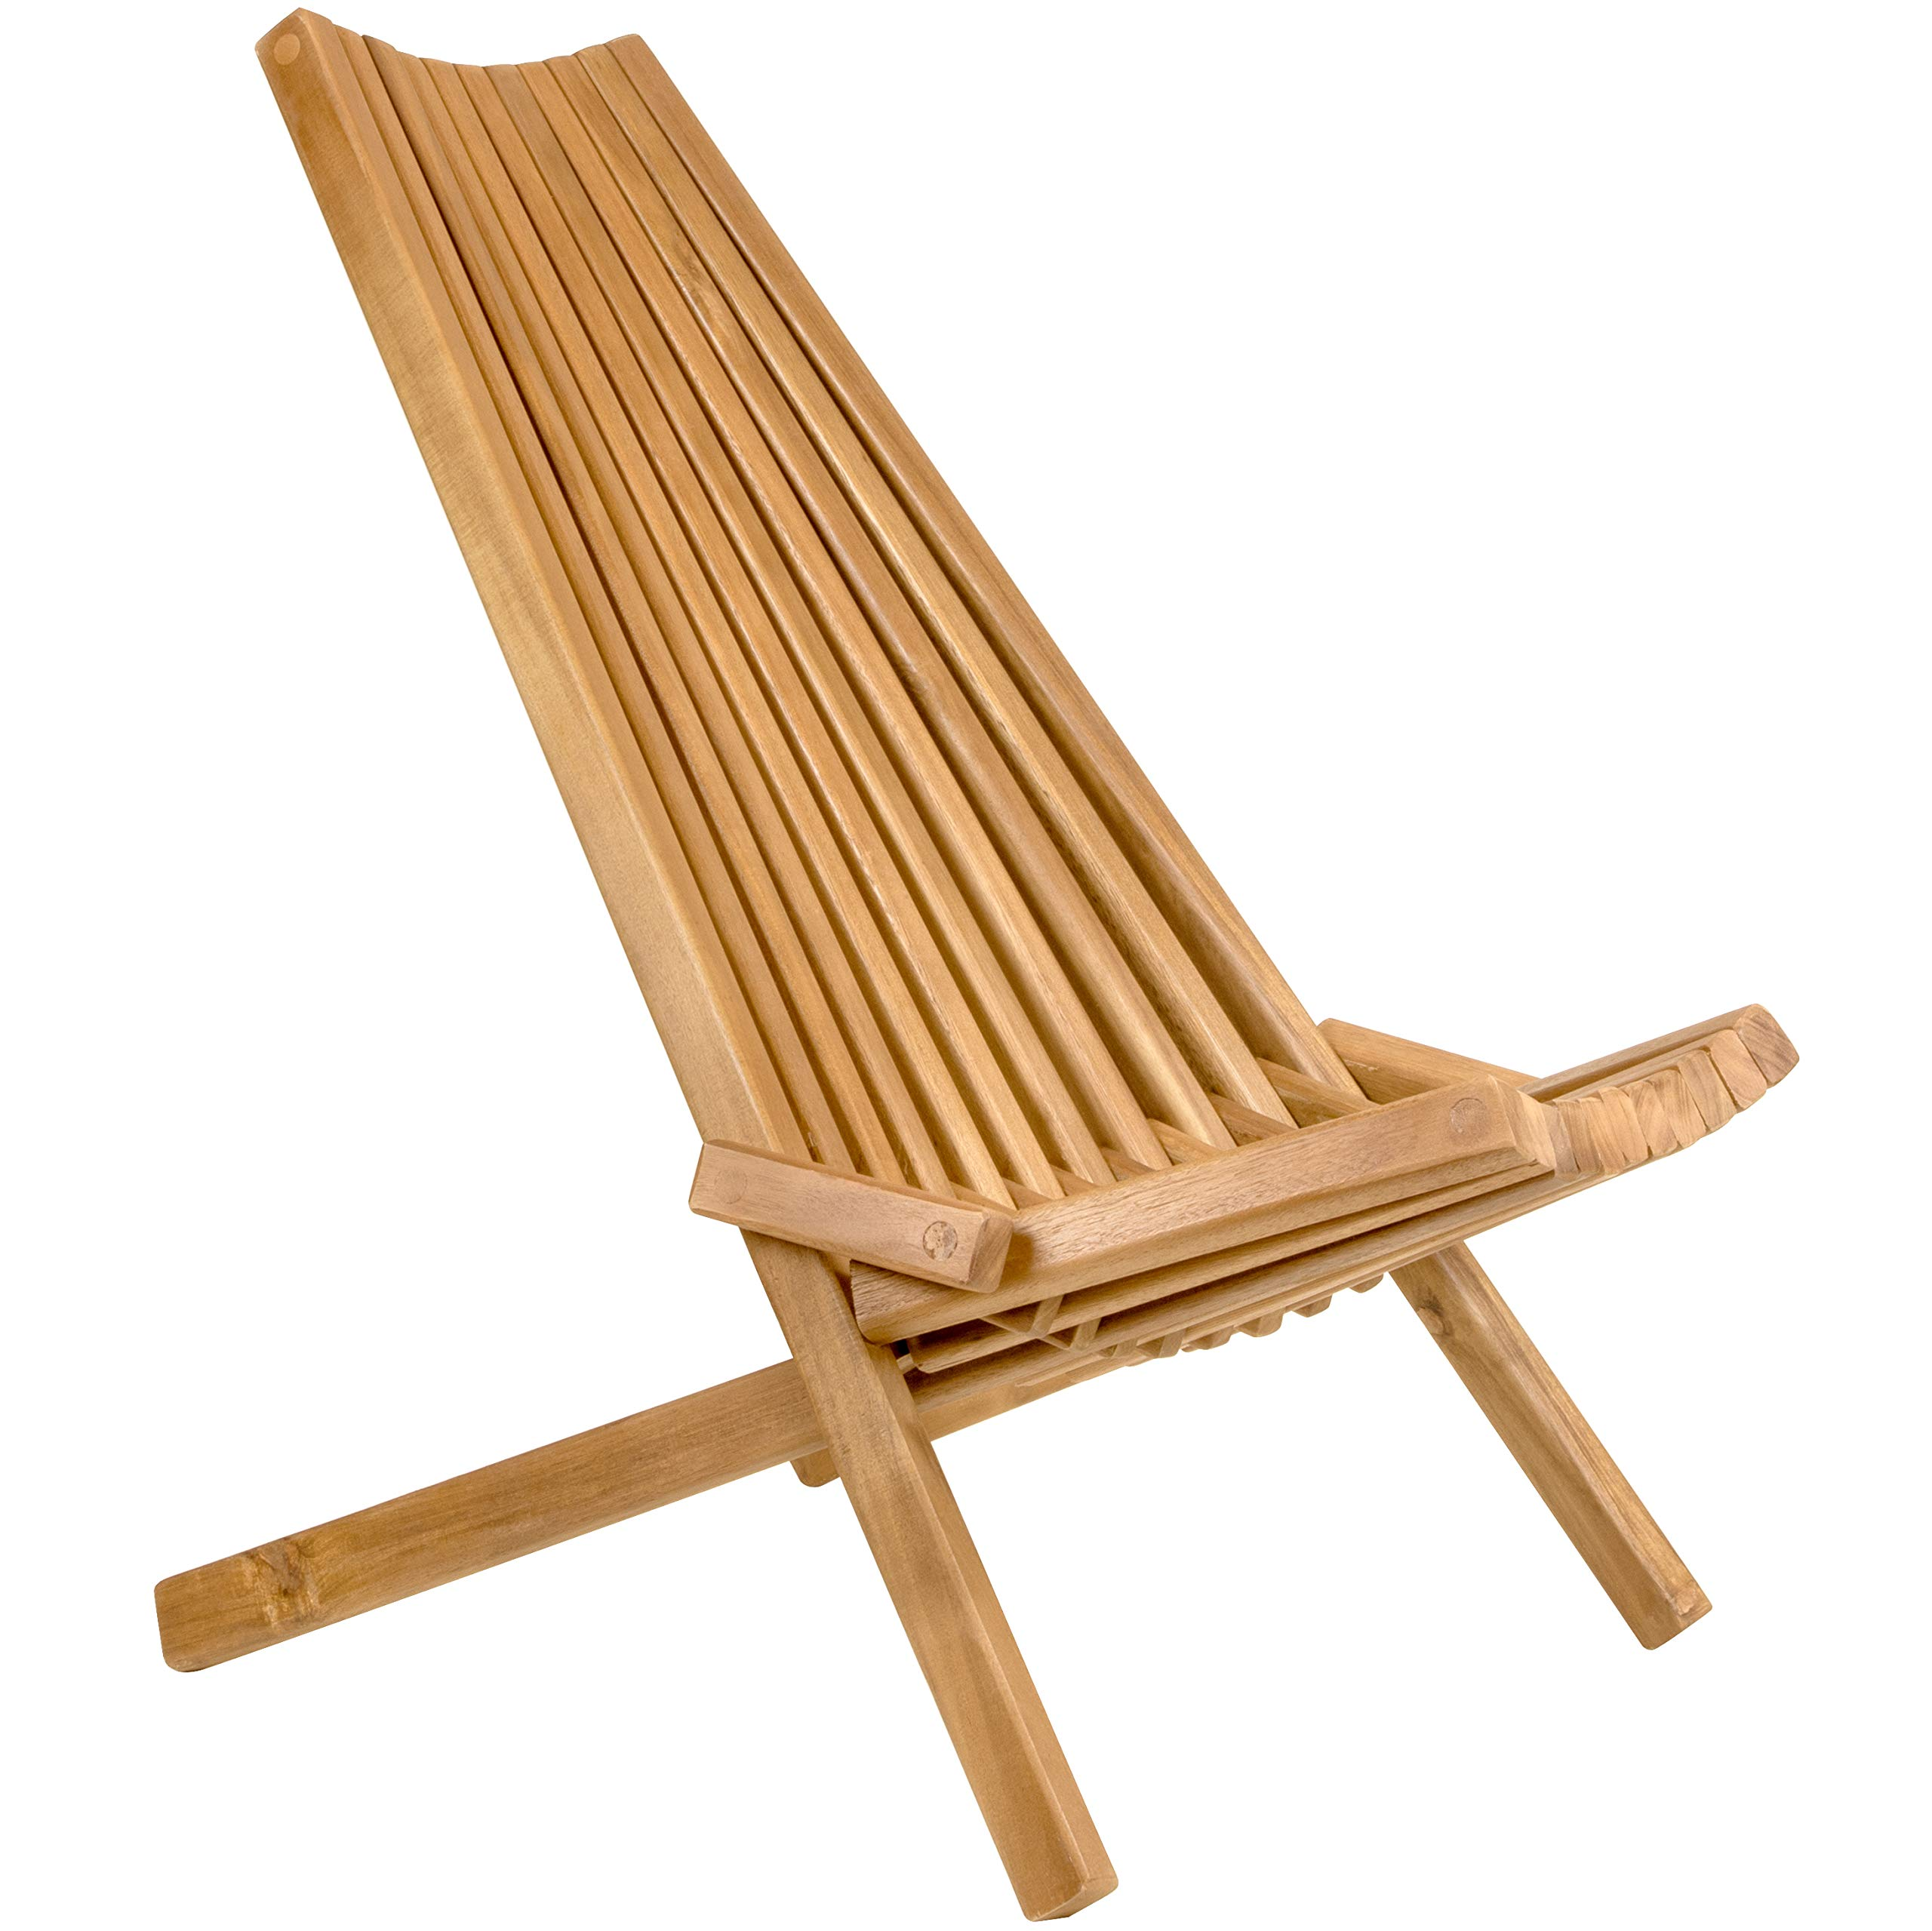 Folding wooden lounge chair